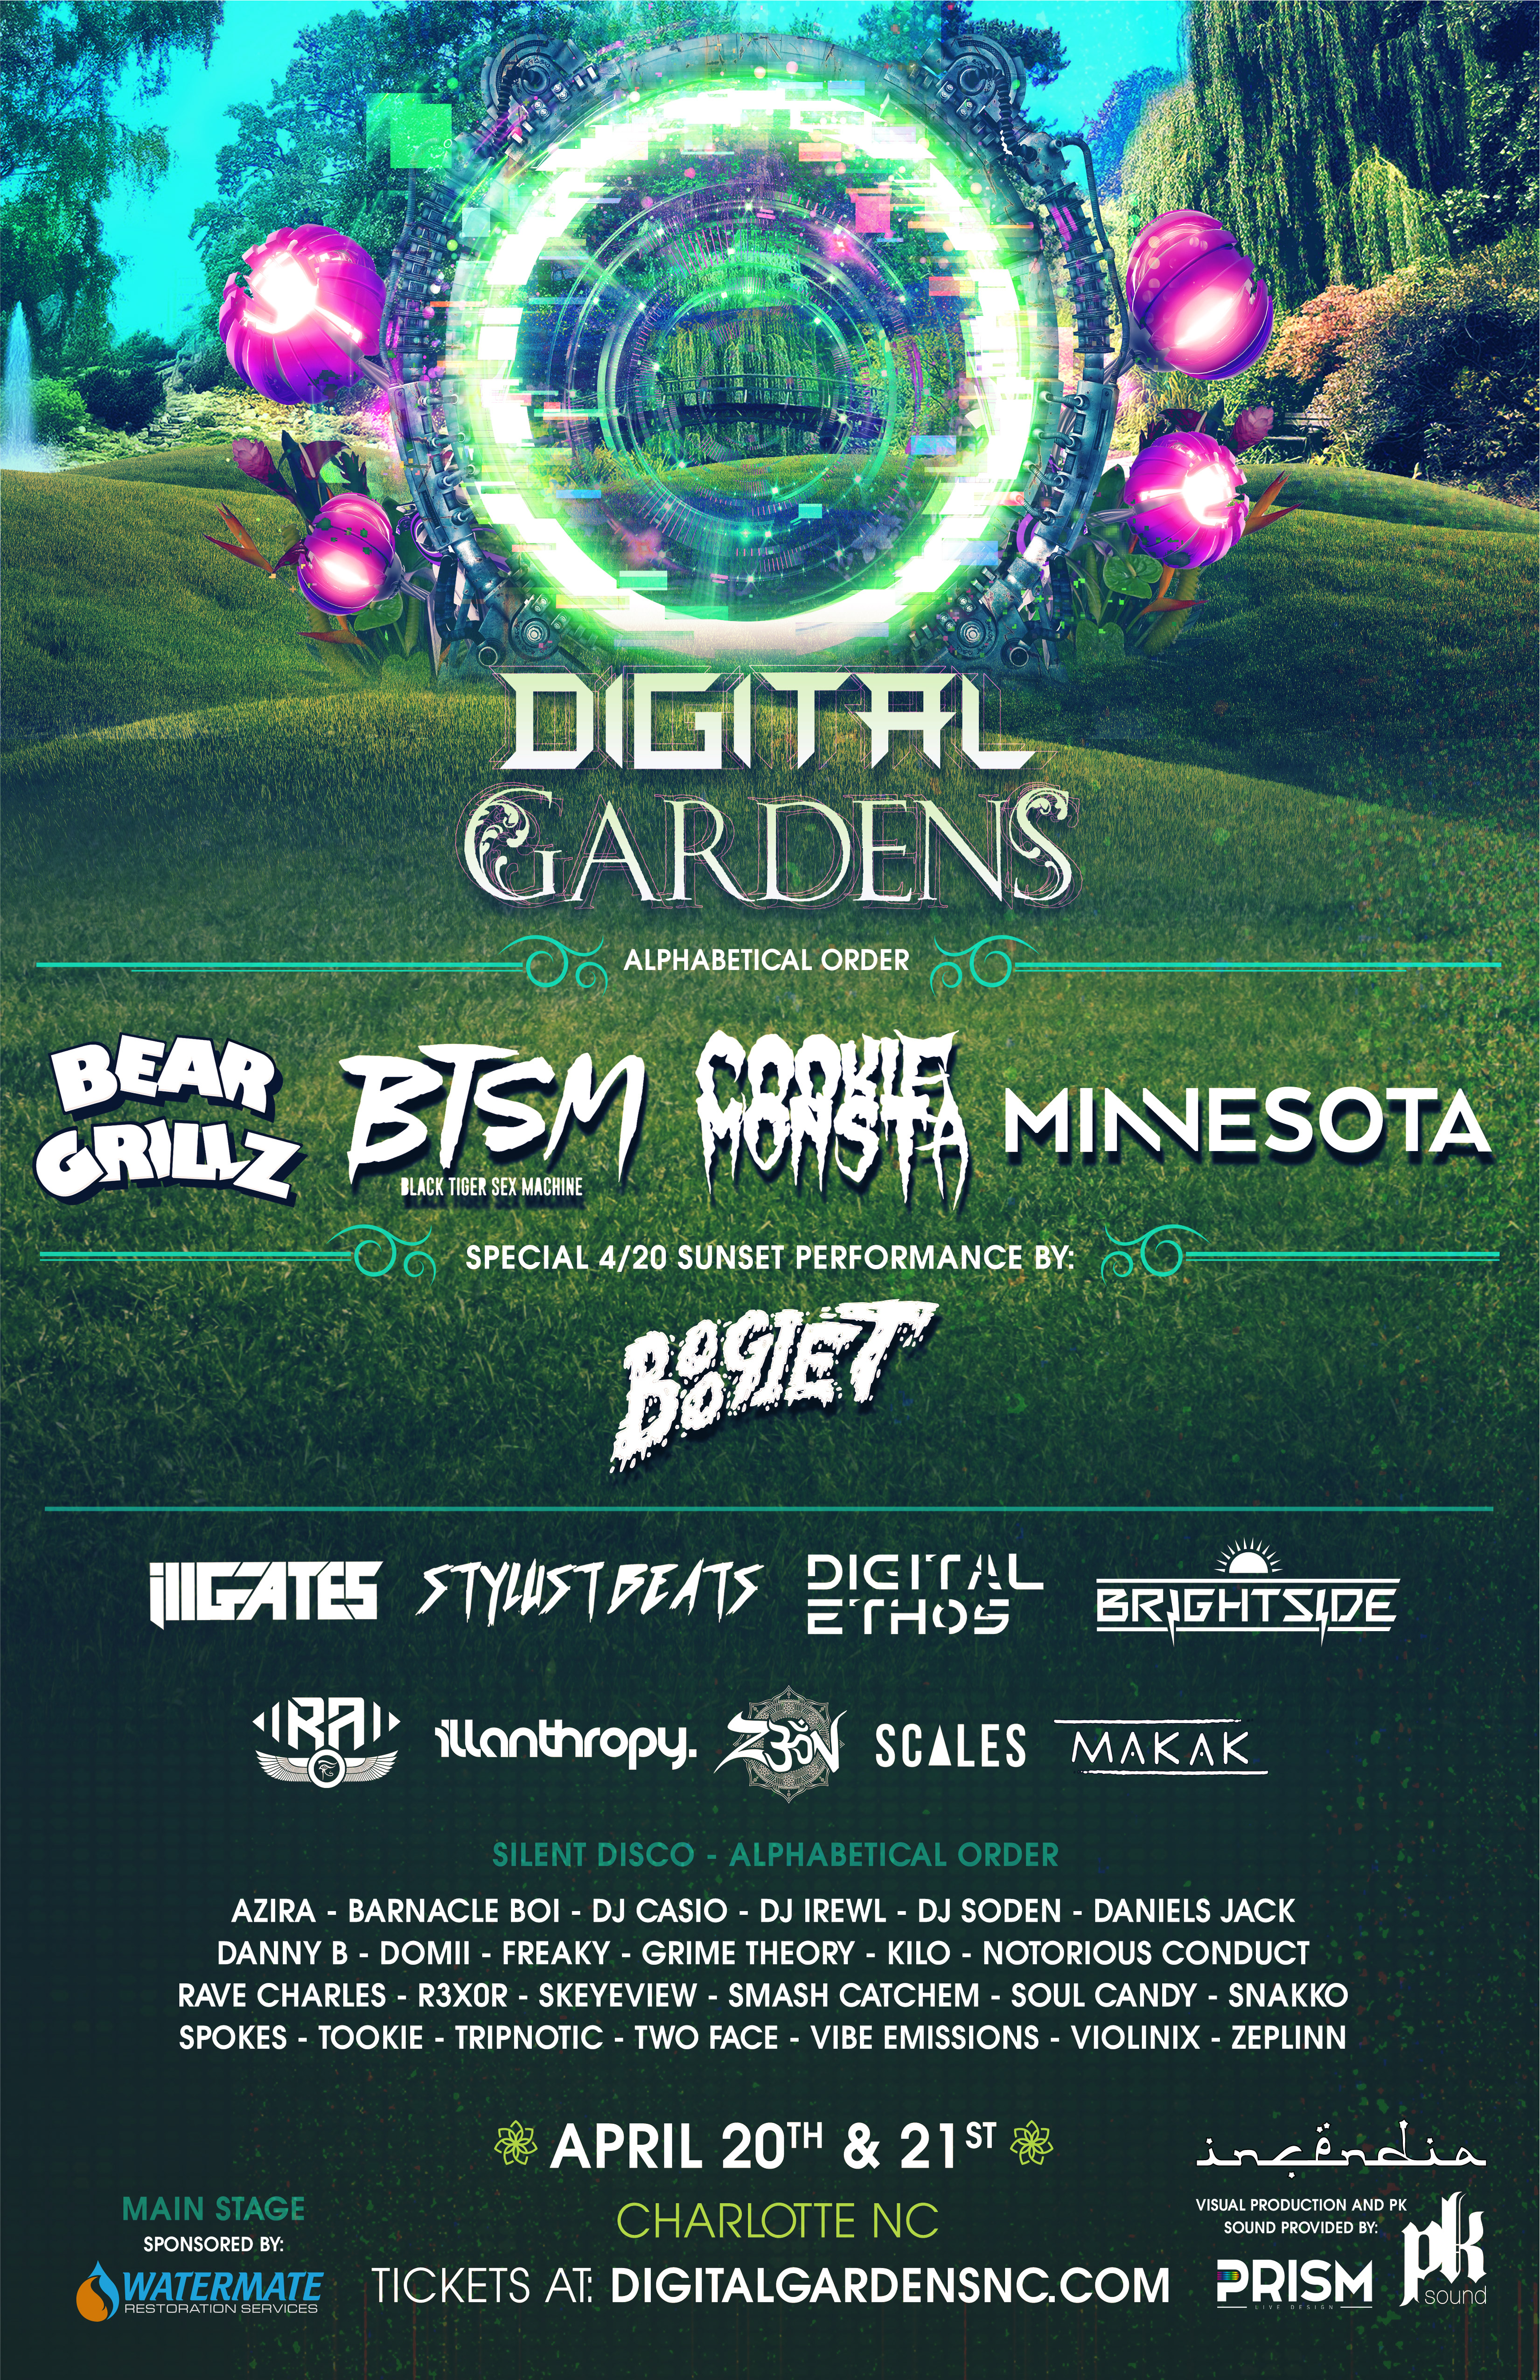 I Made A Playlist Of The Digital Garden Talent You Guys Can Check Out On  Soundcloud. The Weekend Will Definitely Not Be Lacking In Musical Talent,  Or Bass, ...